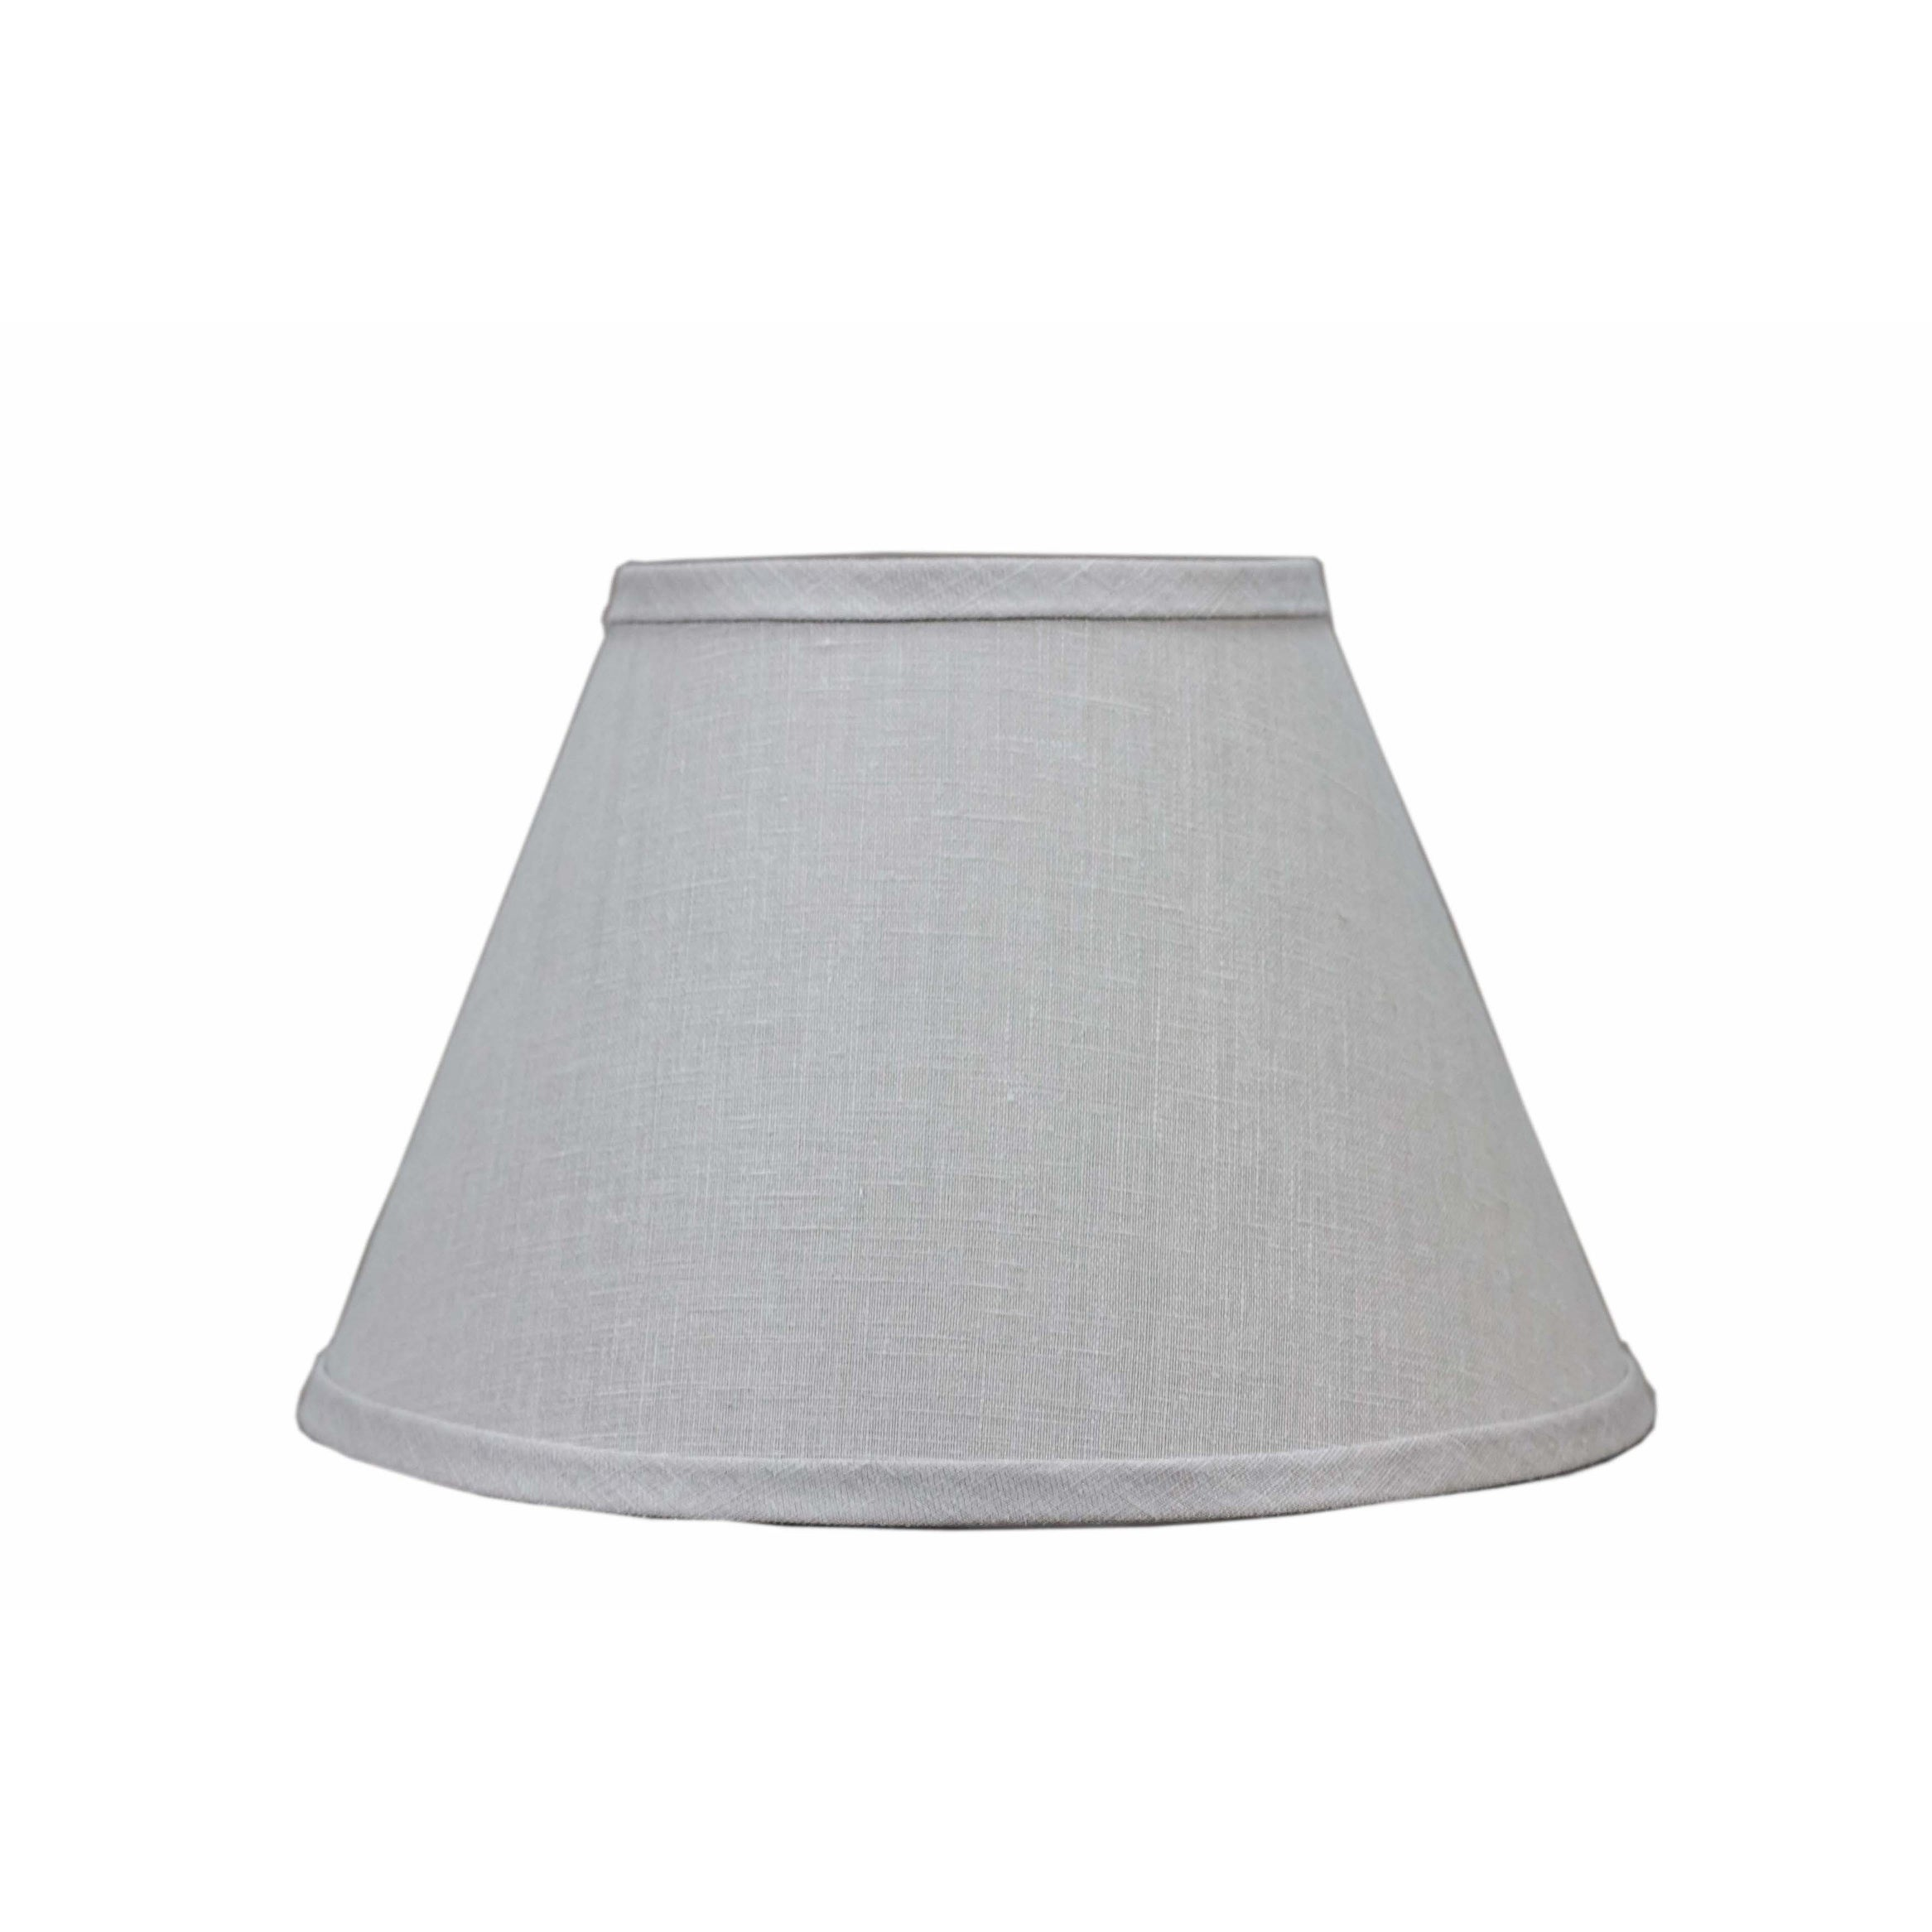 Somette Bone Linen 18 Inch Empire Lamp Shade With With Uno Overstock 17894234